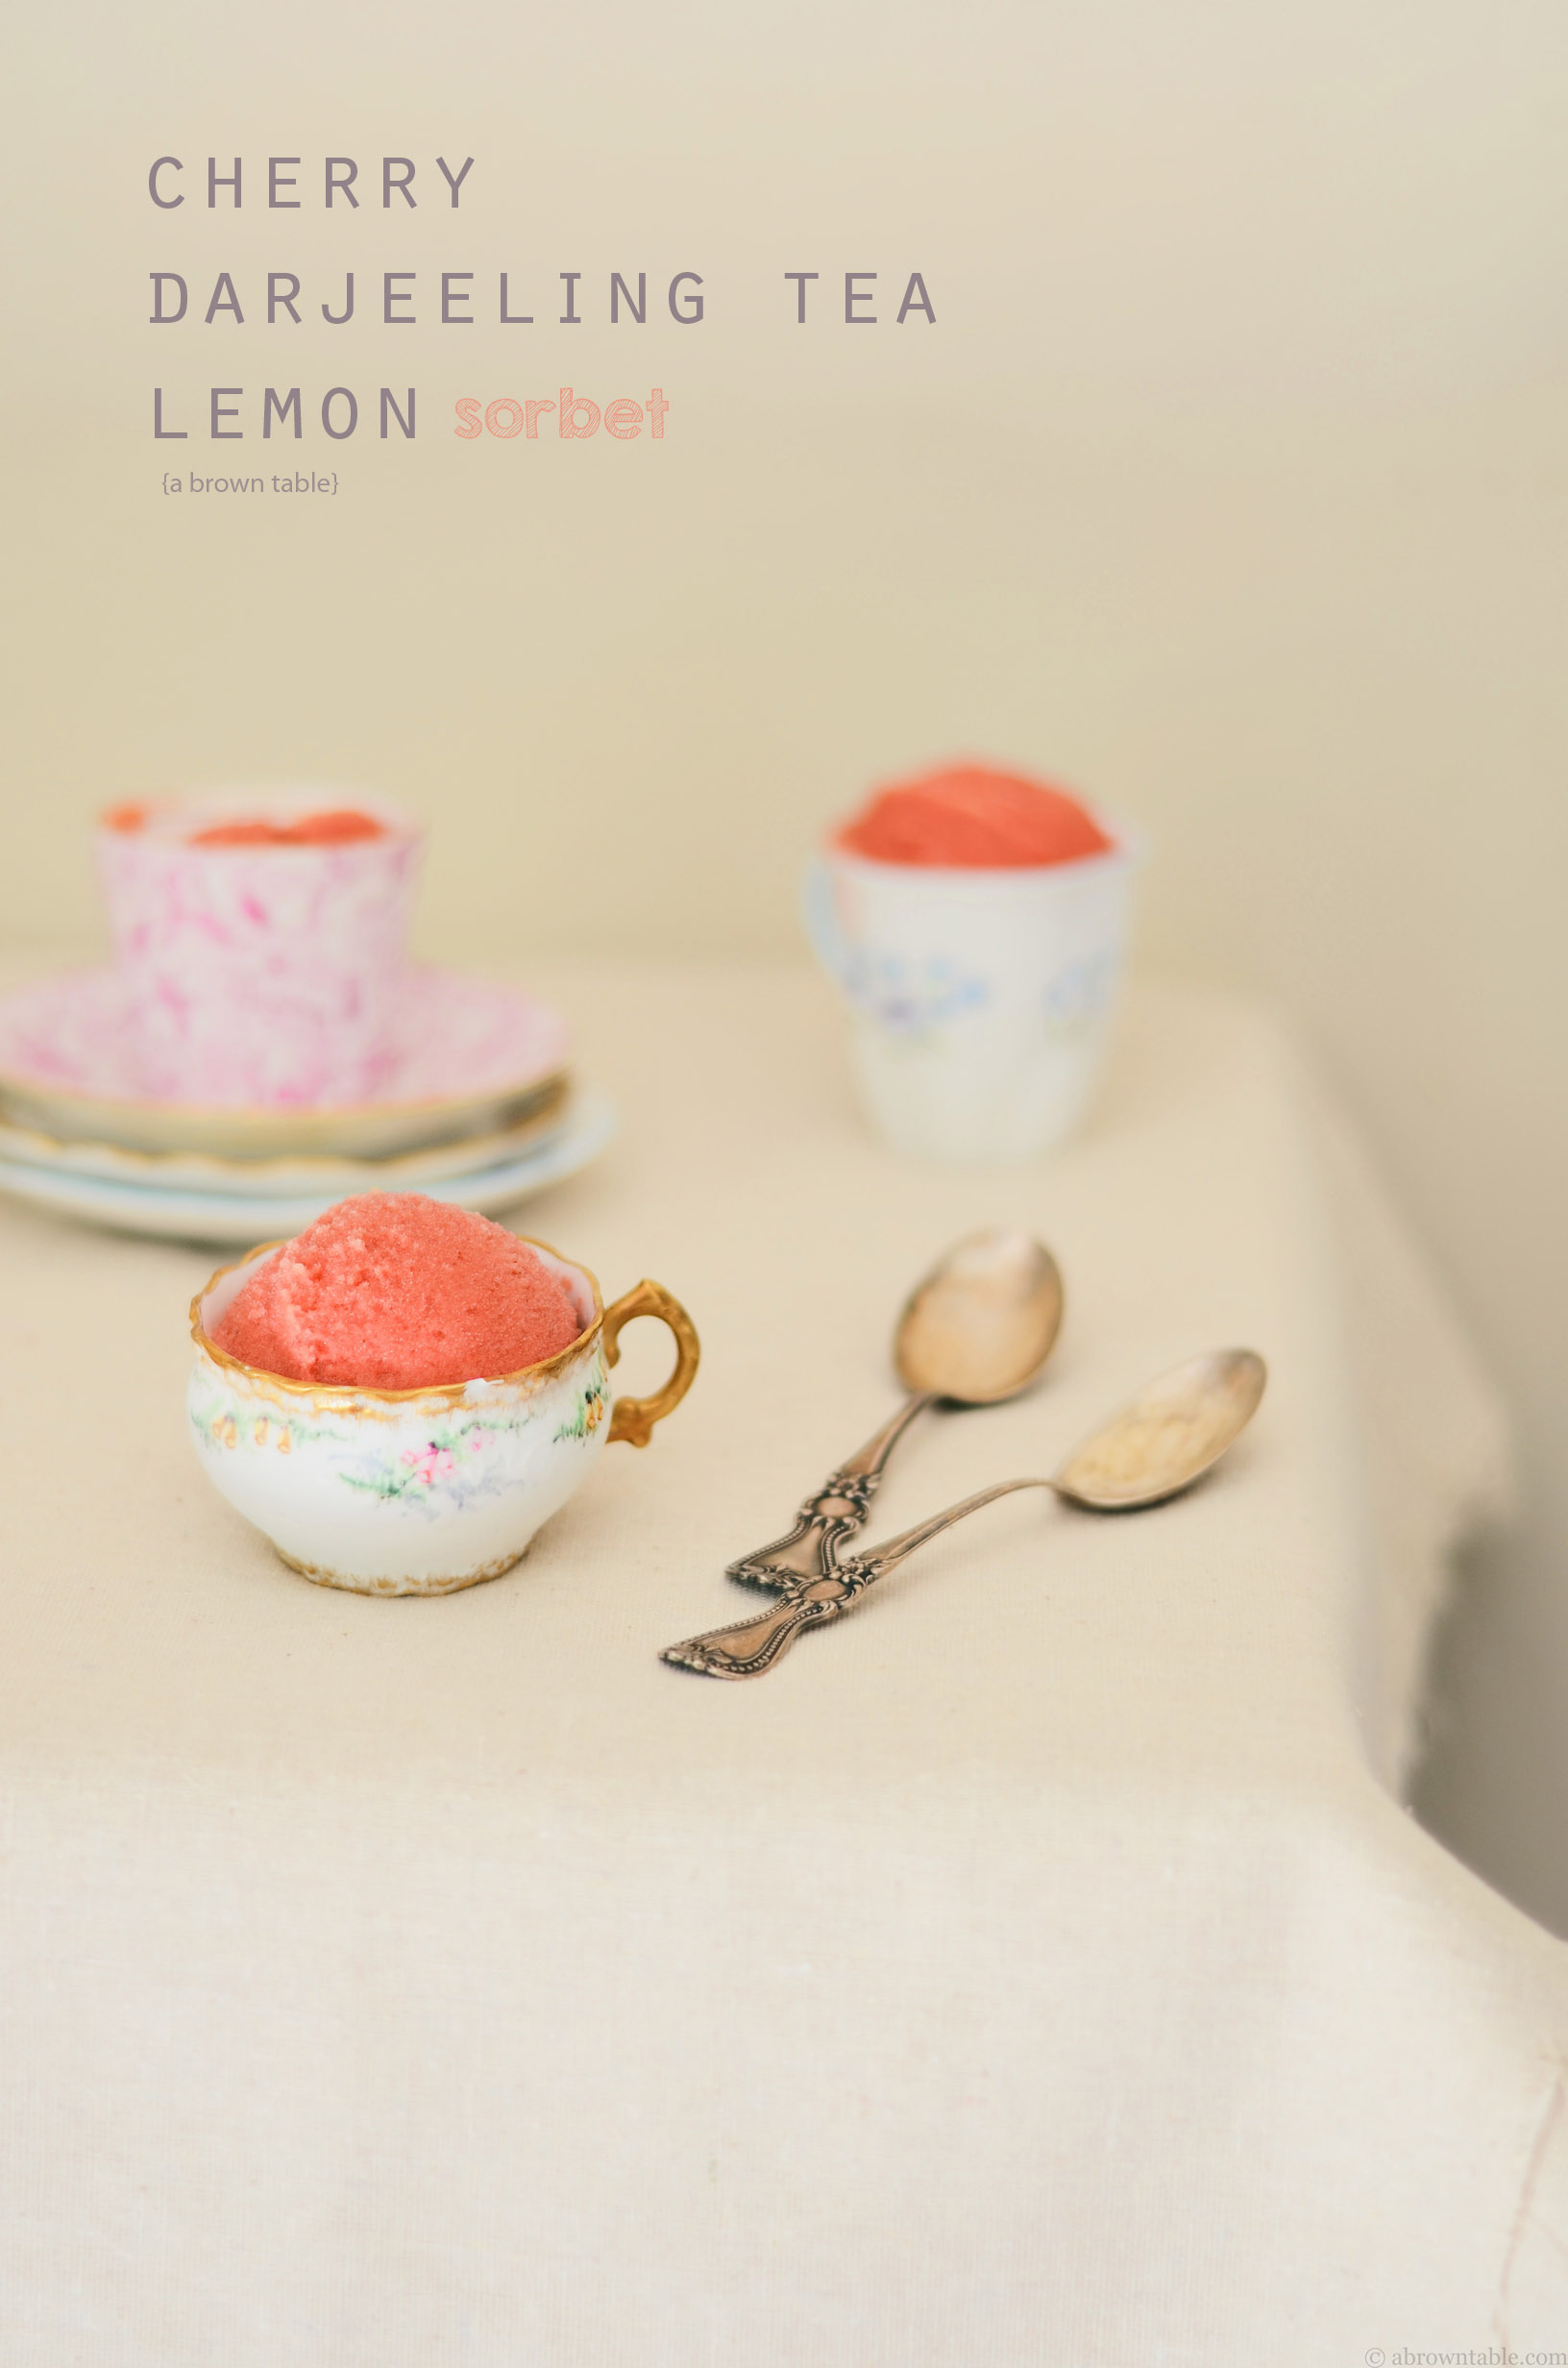 darjeeling tea cherry lemon sorbet